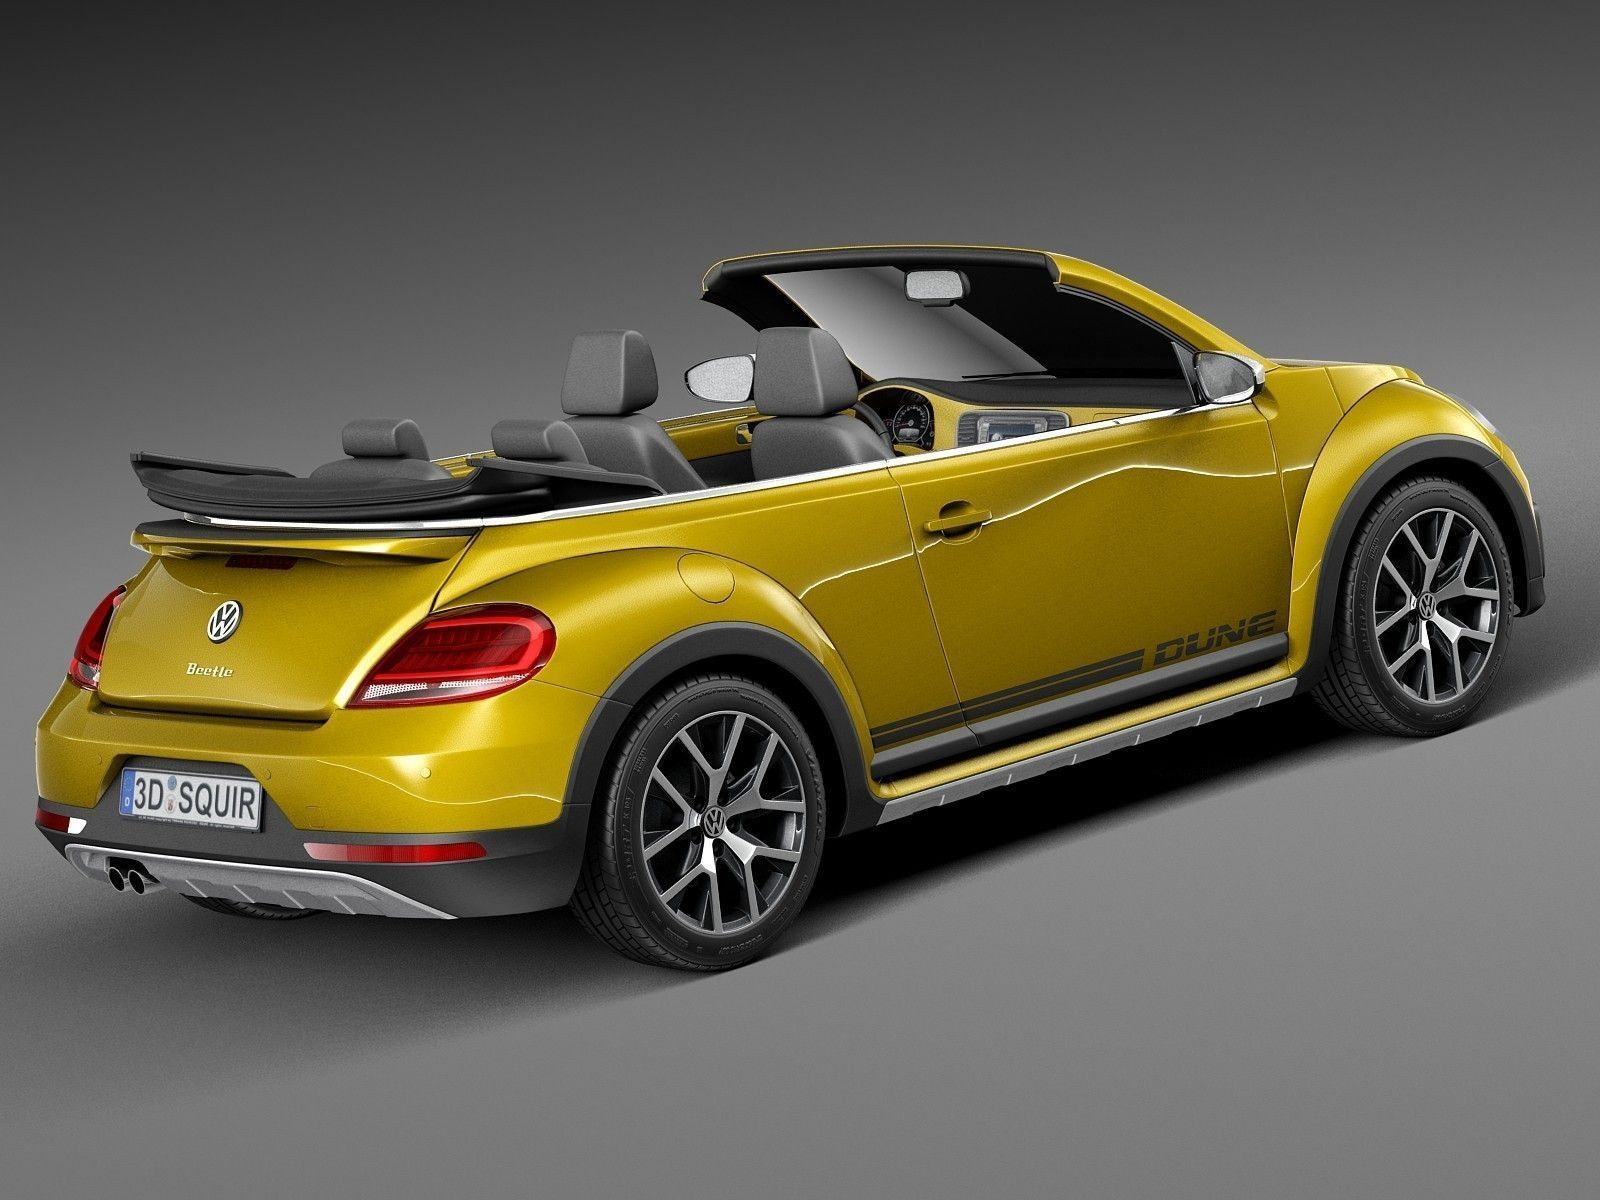 volkswagen beetle dune convertible 2016 3d model max obj 3ds fbx c4d lwo lw lws. Black Bedroom Furniture Sets. Home Design Ideas